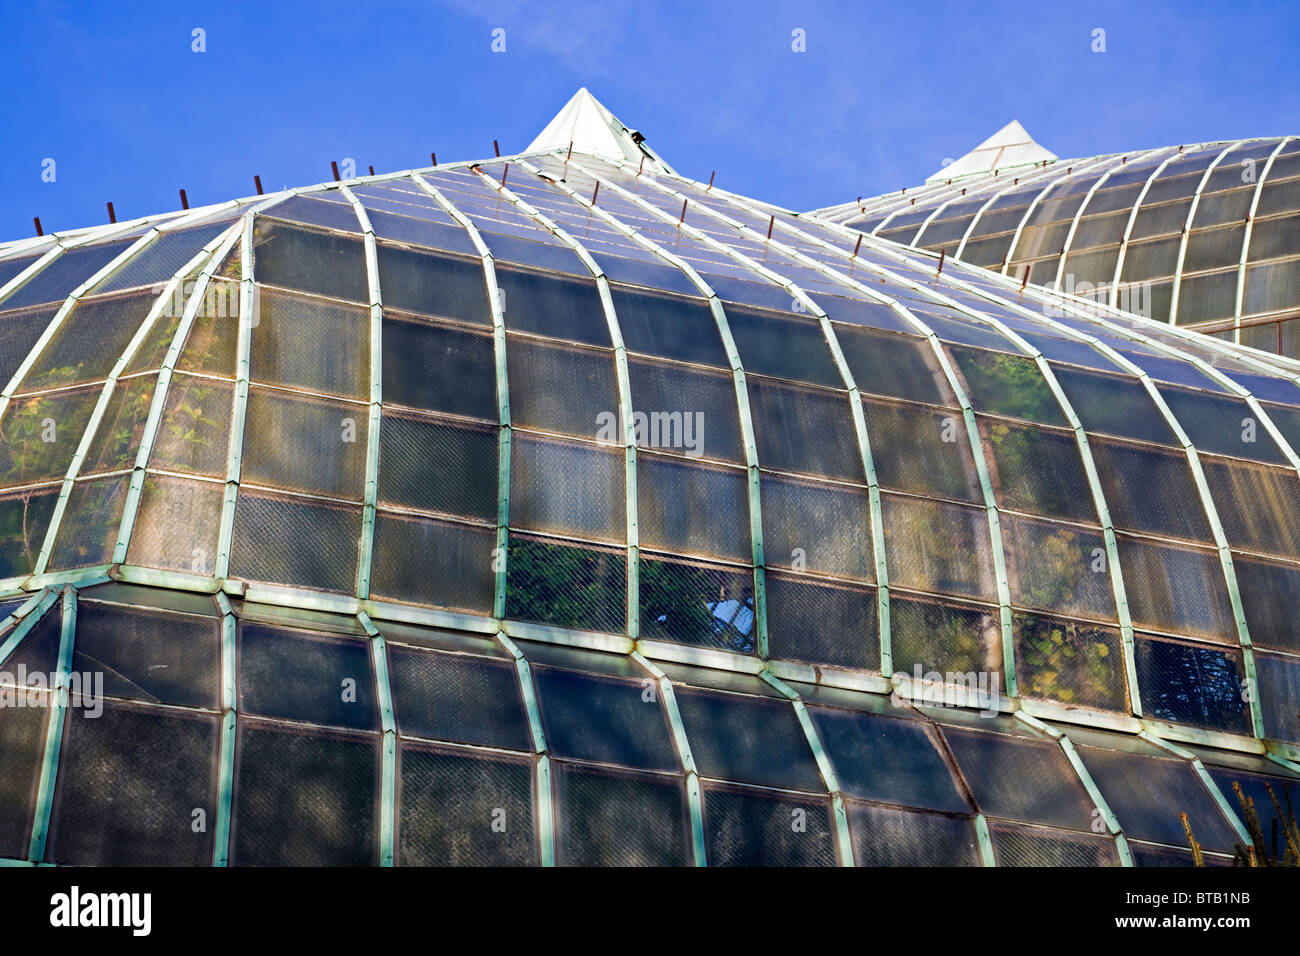 Roof of Lincoln Park Conservatory - Stock Image